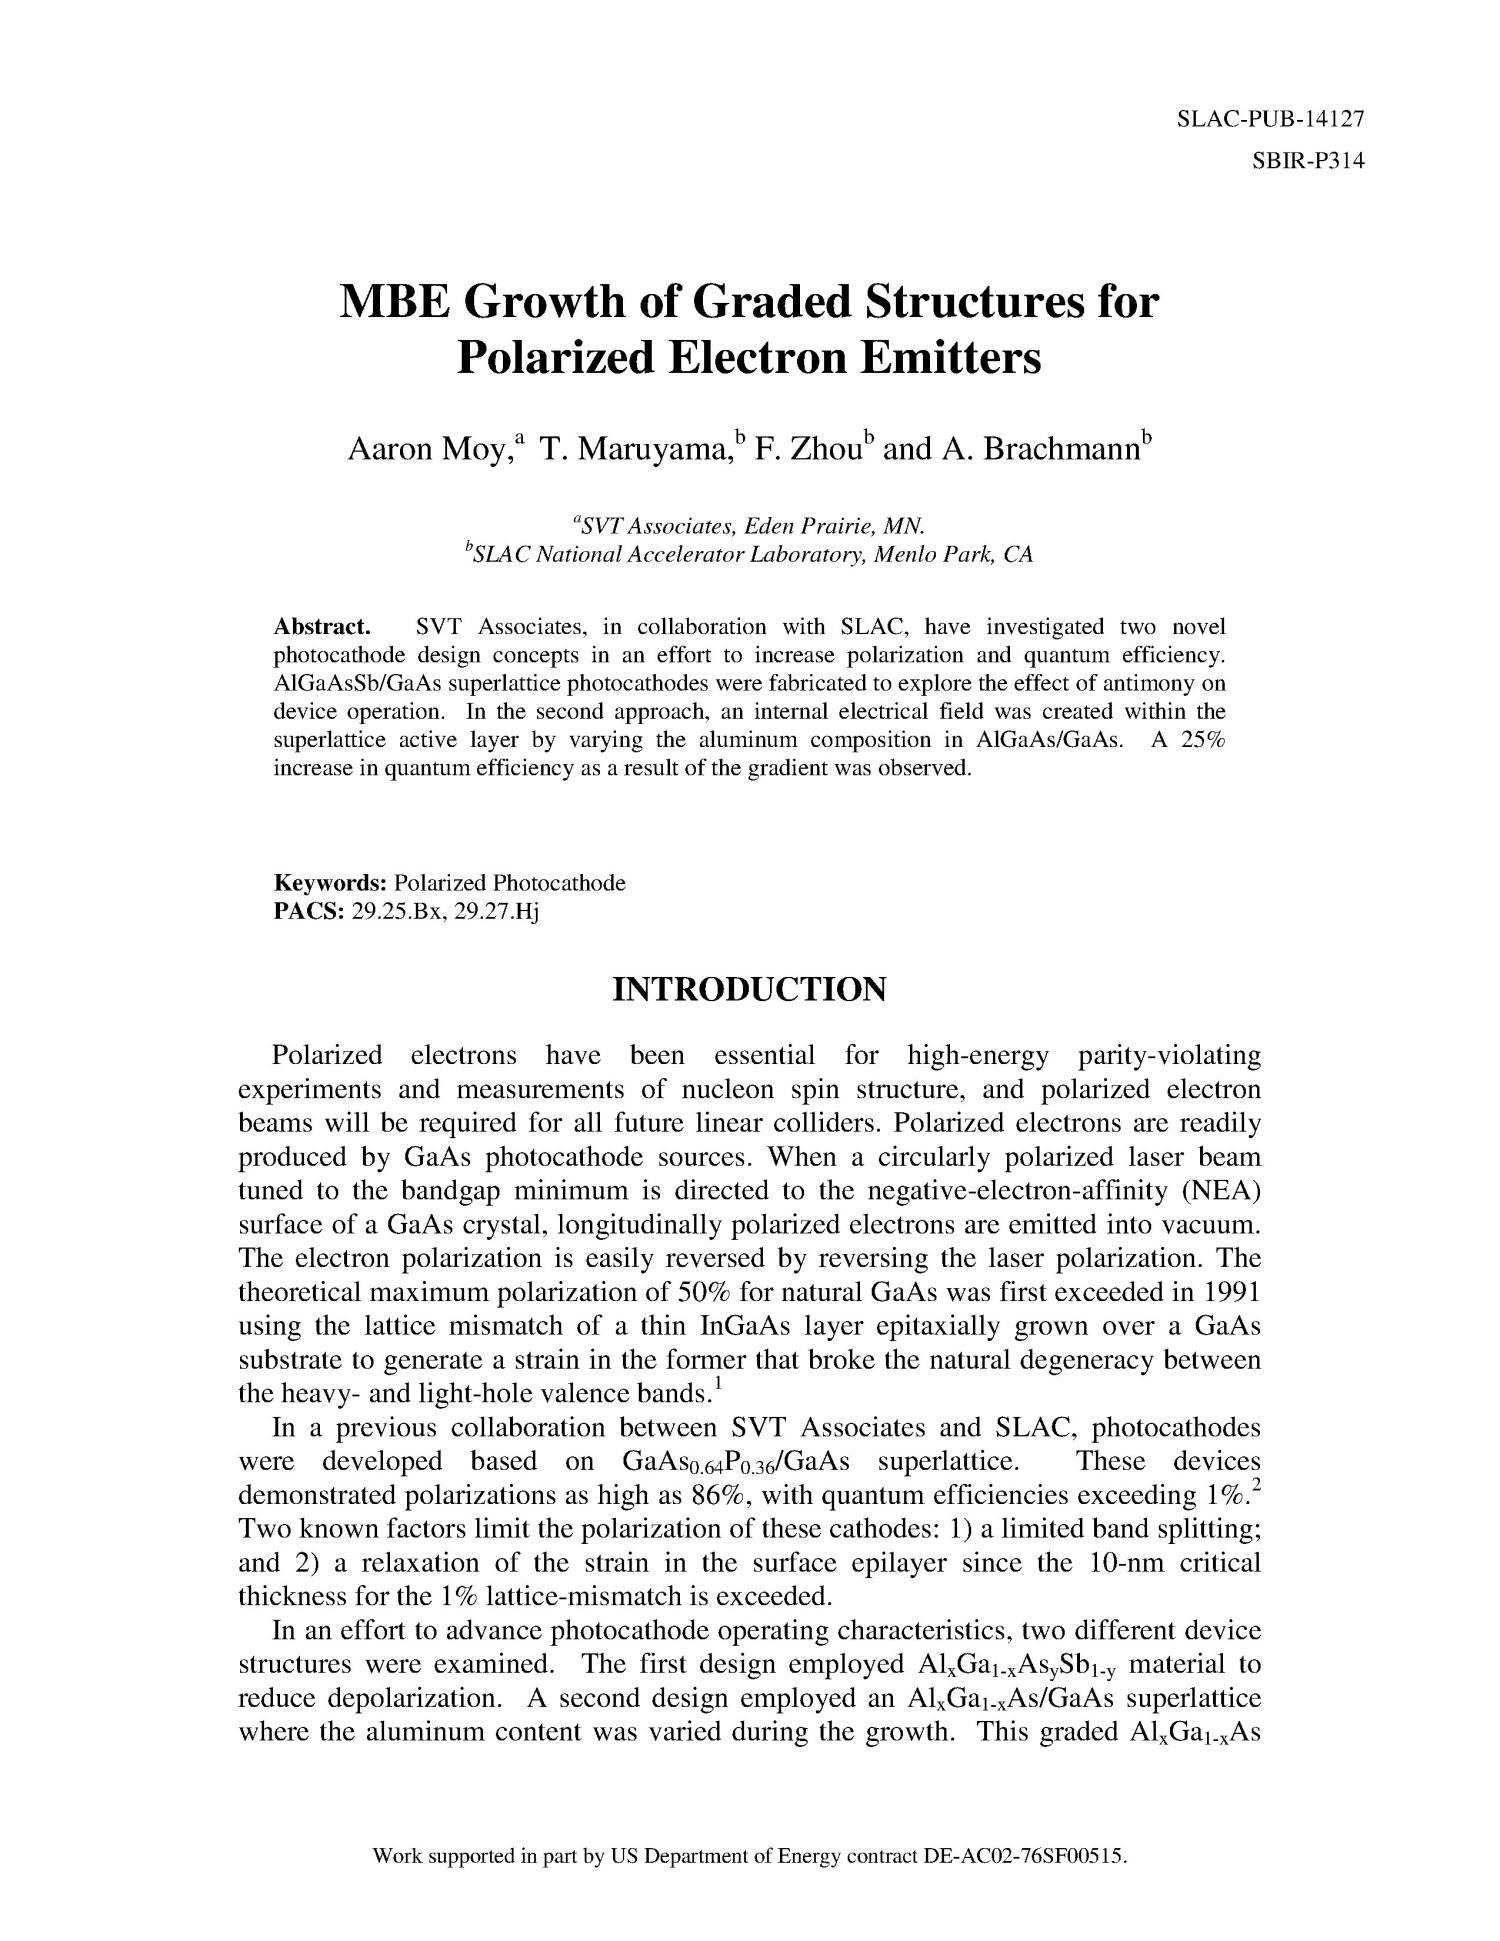 MBE Growth of Graded Structures for Polarized Electron Emitters                                                                                                      [Sequence #]: 1 of 10